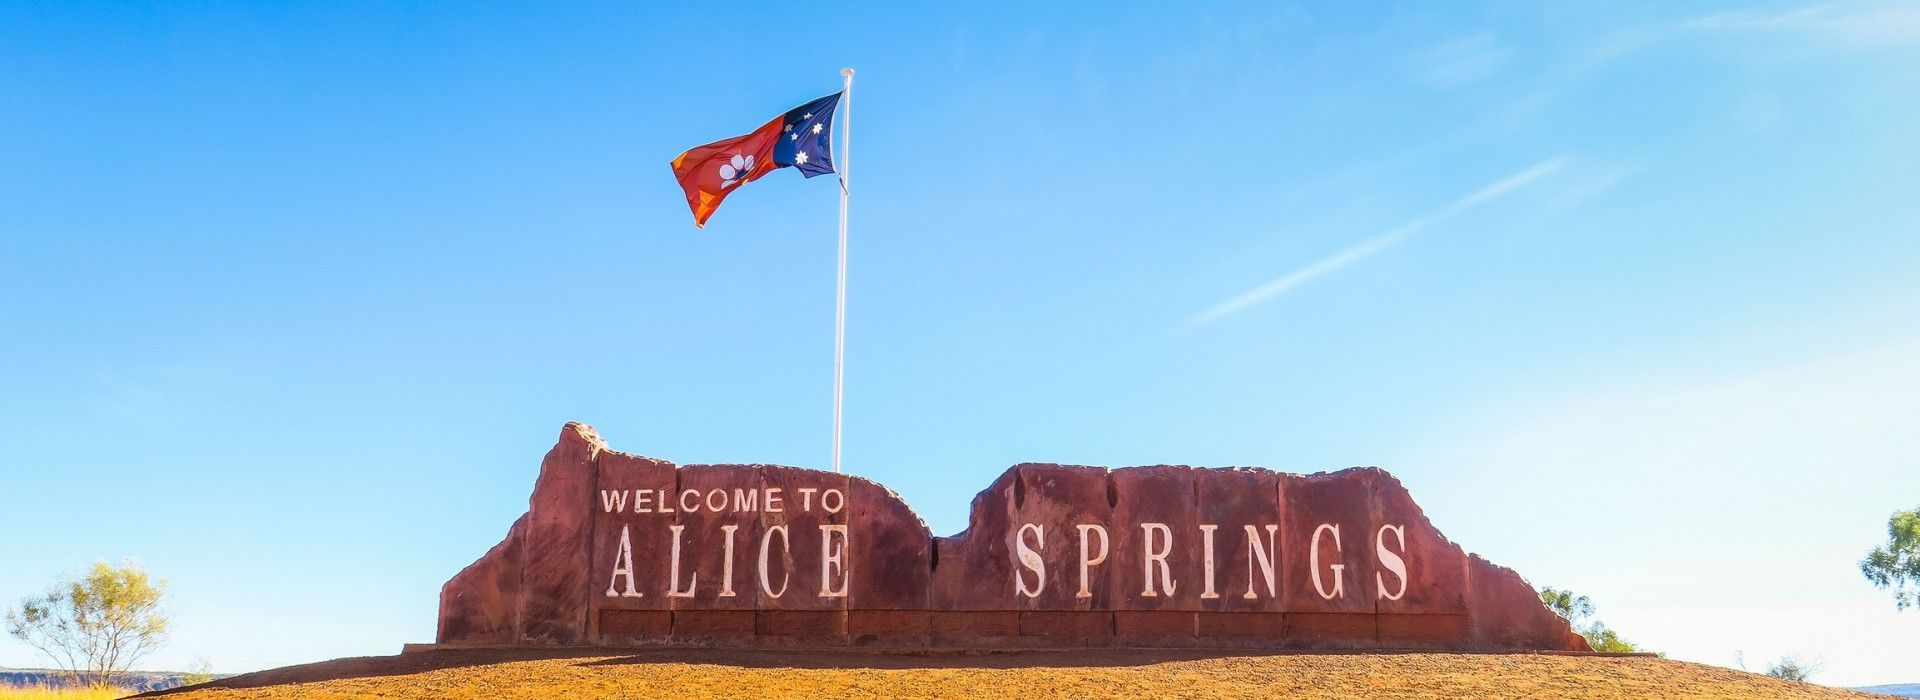 Travelling Alice Springs - Tours and Trips in Alice Springs